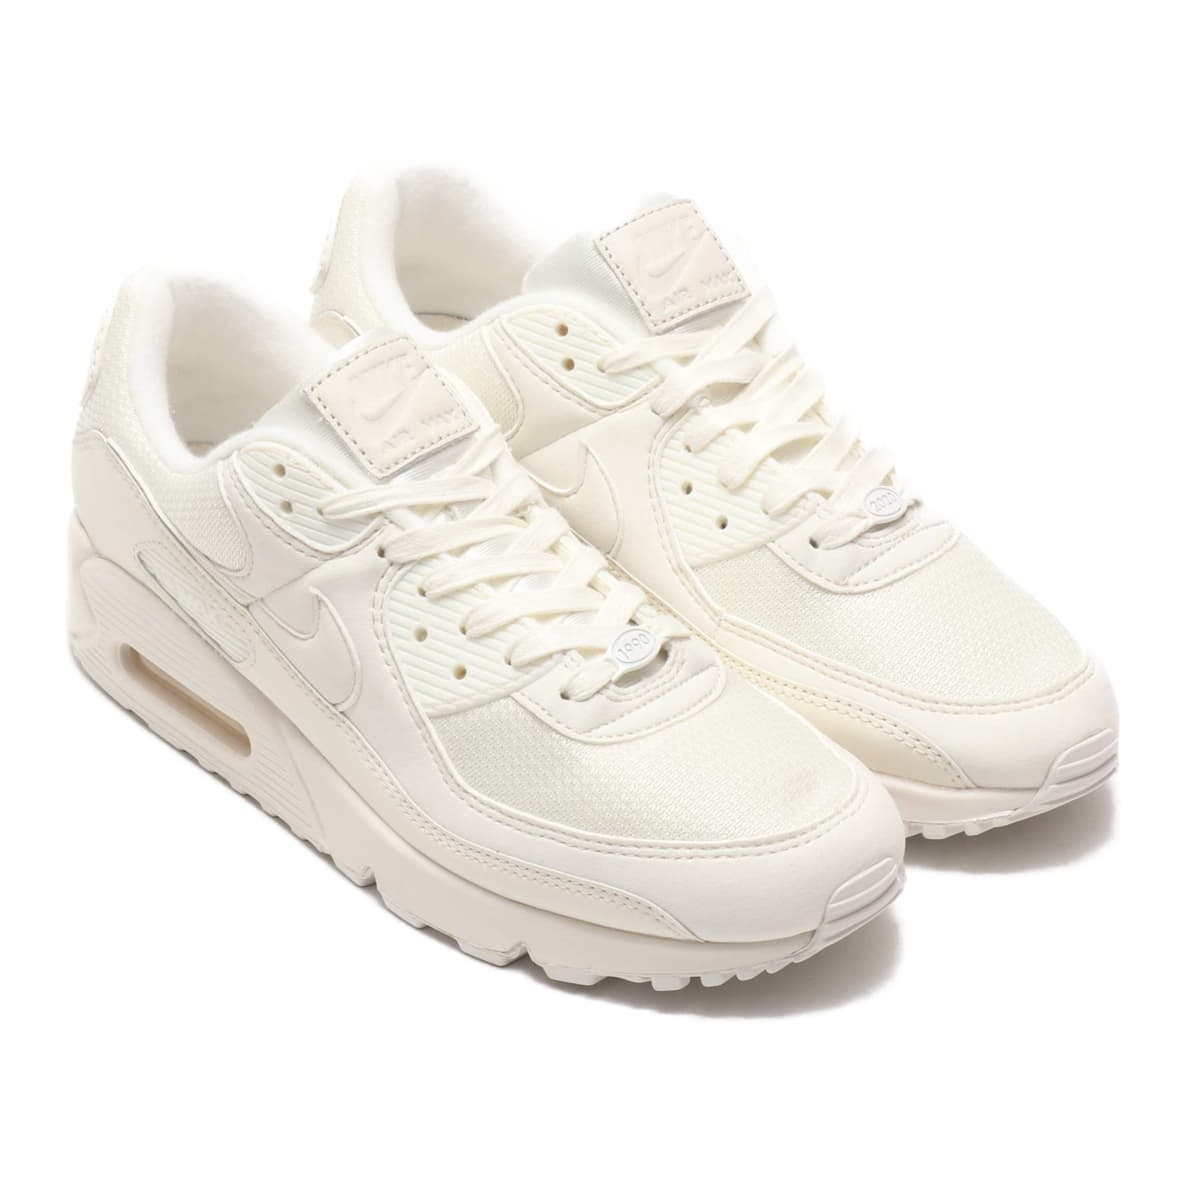 NIKE AIR MAX 90 NRG SAIL/SAIL-SAIL 19HO-S_photo_large